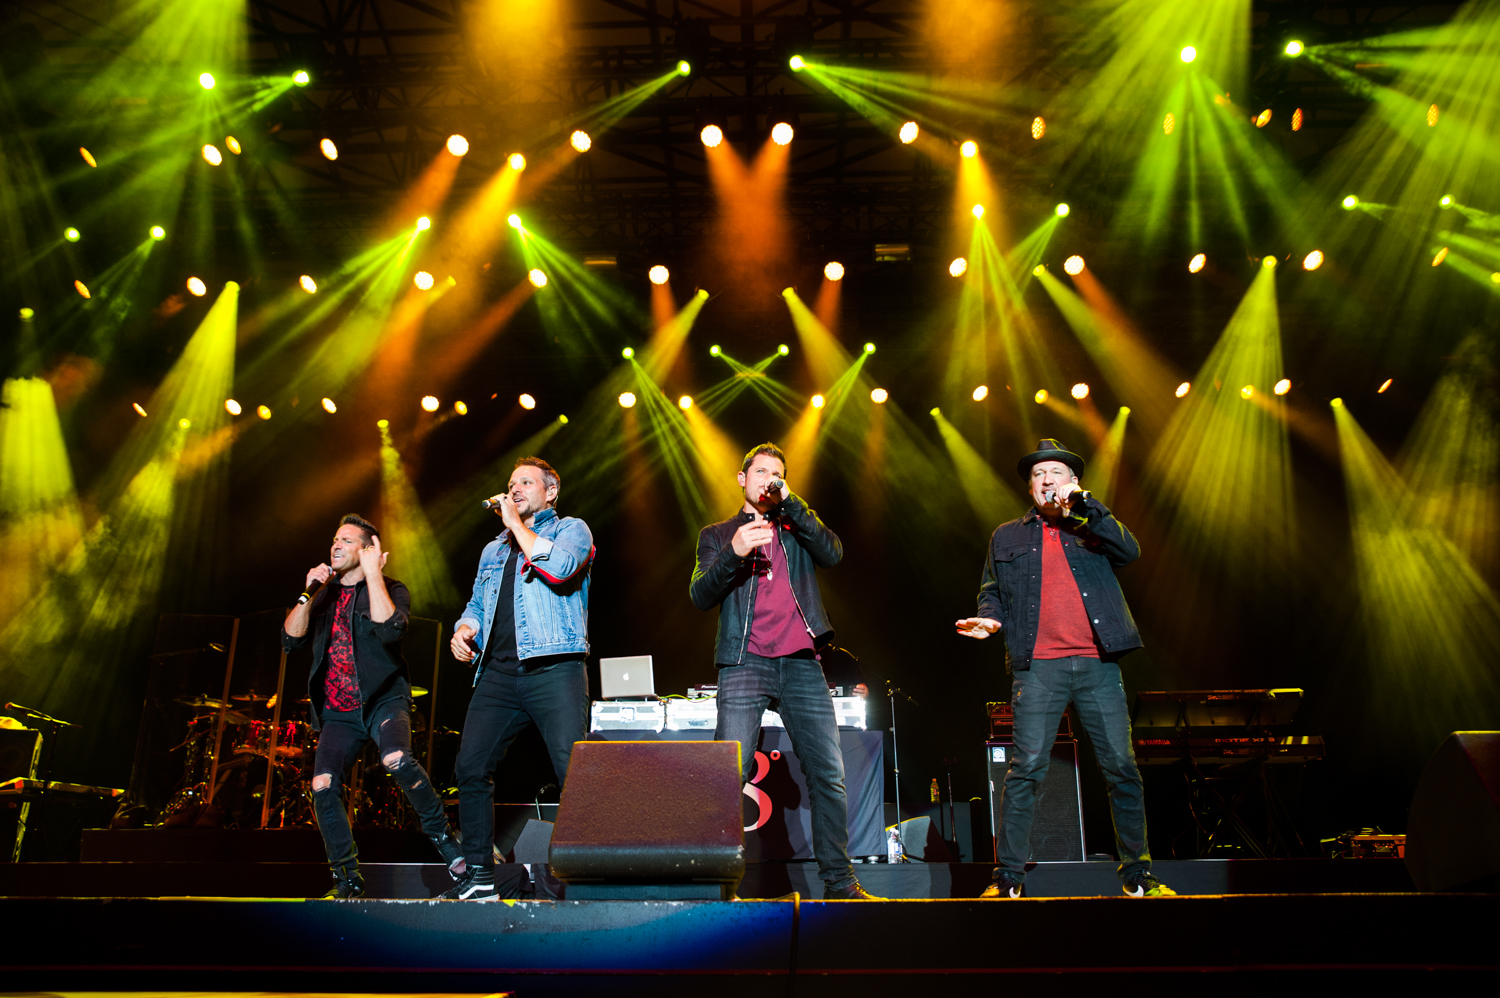 Boyz II Men and 98 Degrees took the stage at the Washington State Fair for a steamy performance Thursday night (9/12). The crowd swooned to the bands' throwback hits, both iconic in their own ways. It was a much, much, much needed blast from the past that we will be reliving for weeks! (Image: Elizabeth Crook / Seattle Refined){ }